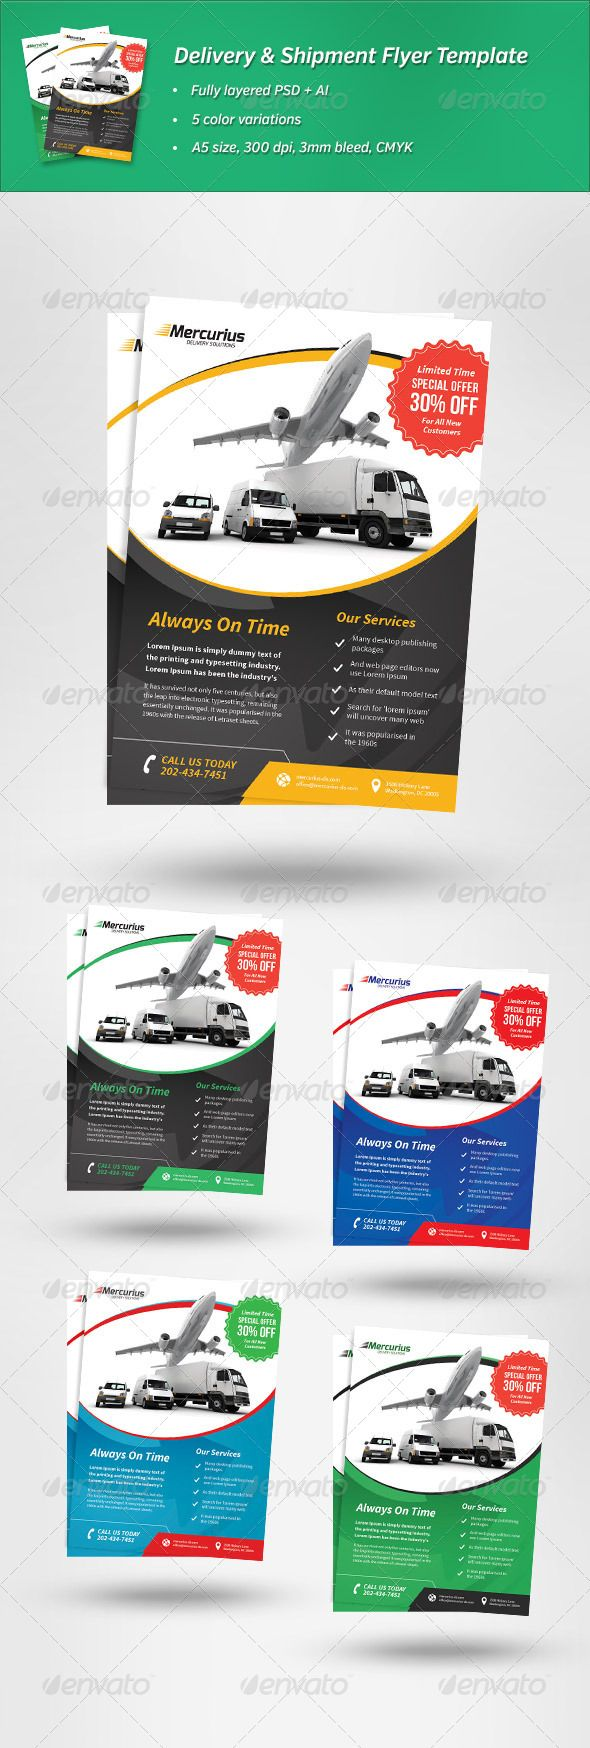 Delivery & Shipment Flyer Template | Flyer template